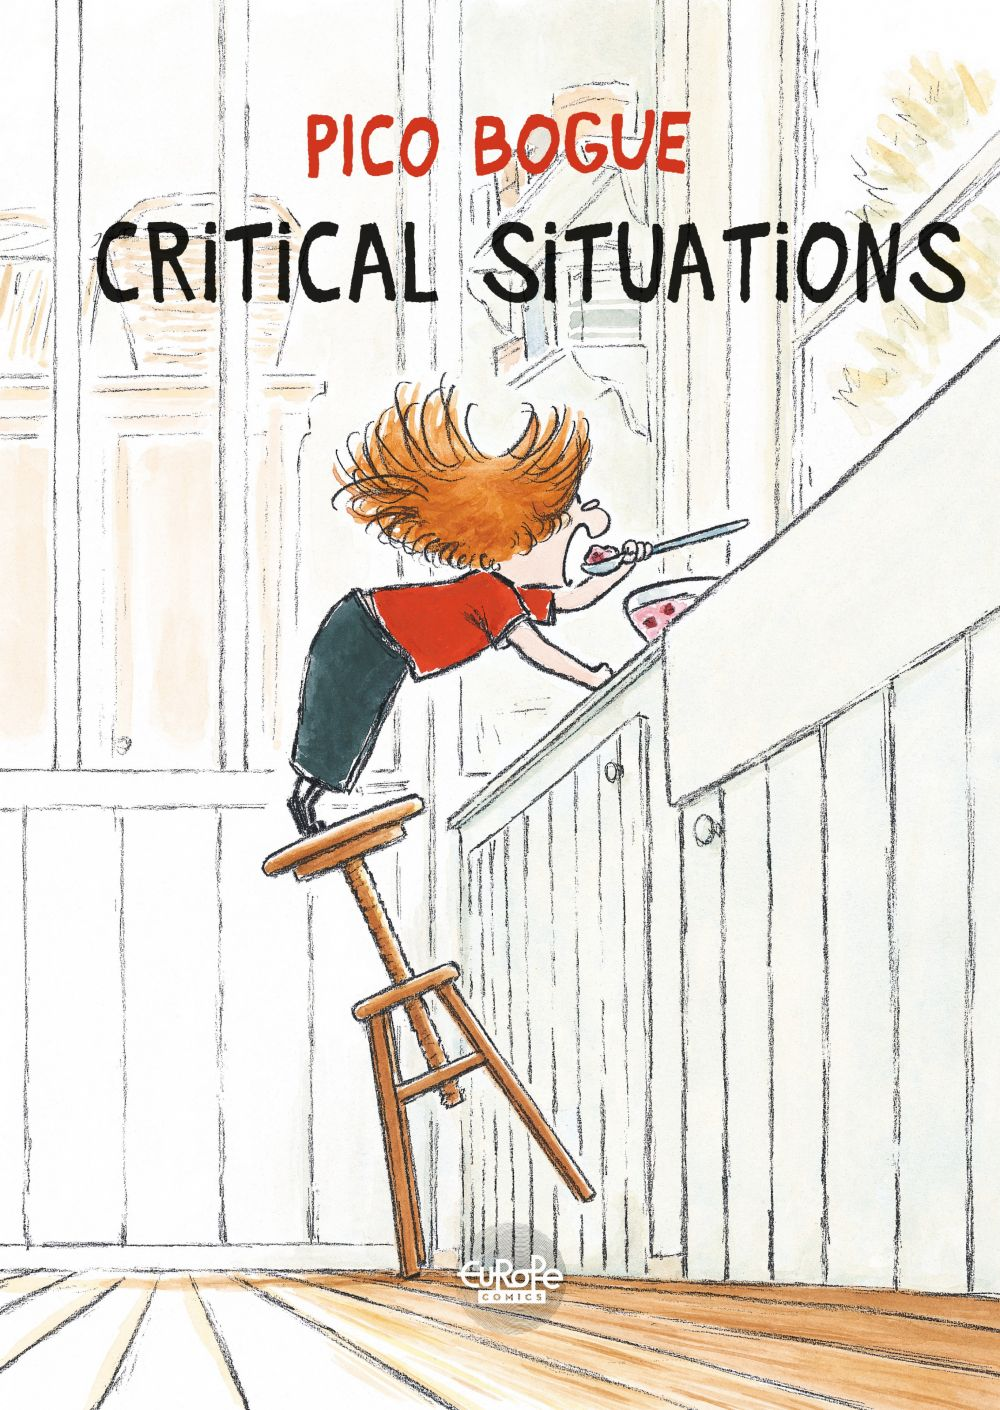 Pico Bogue - Volume 2 - Critical Situations